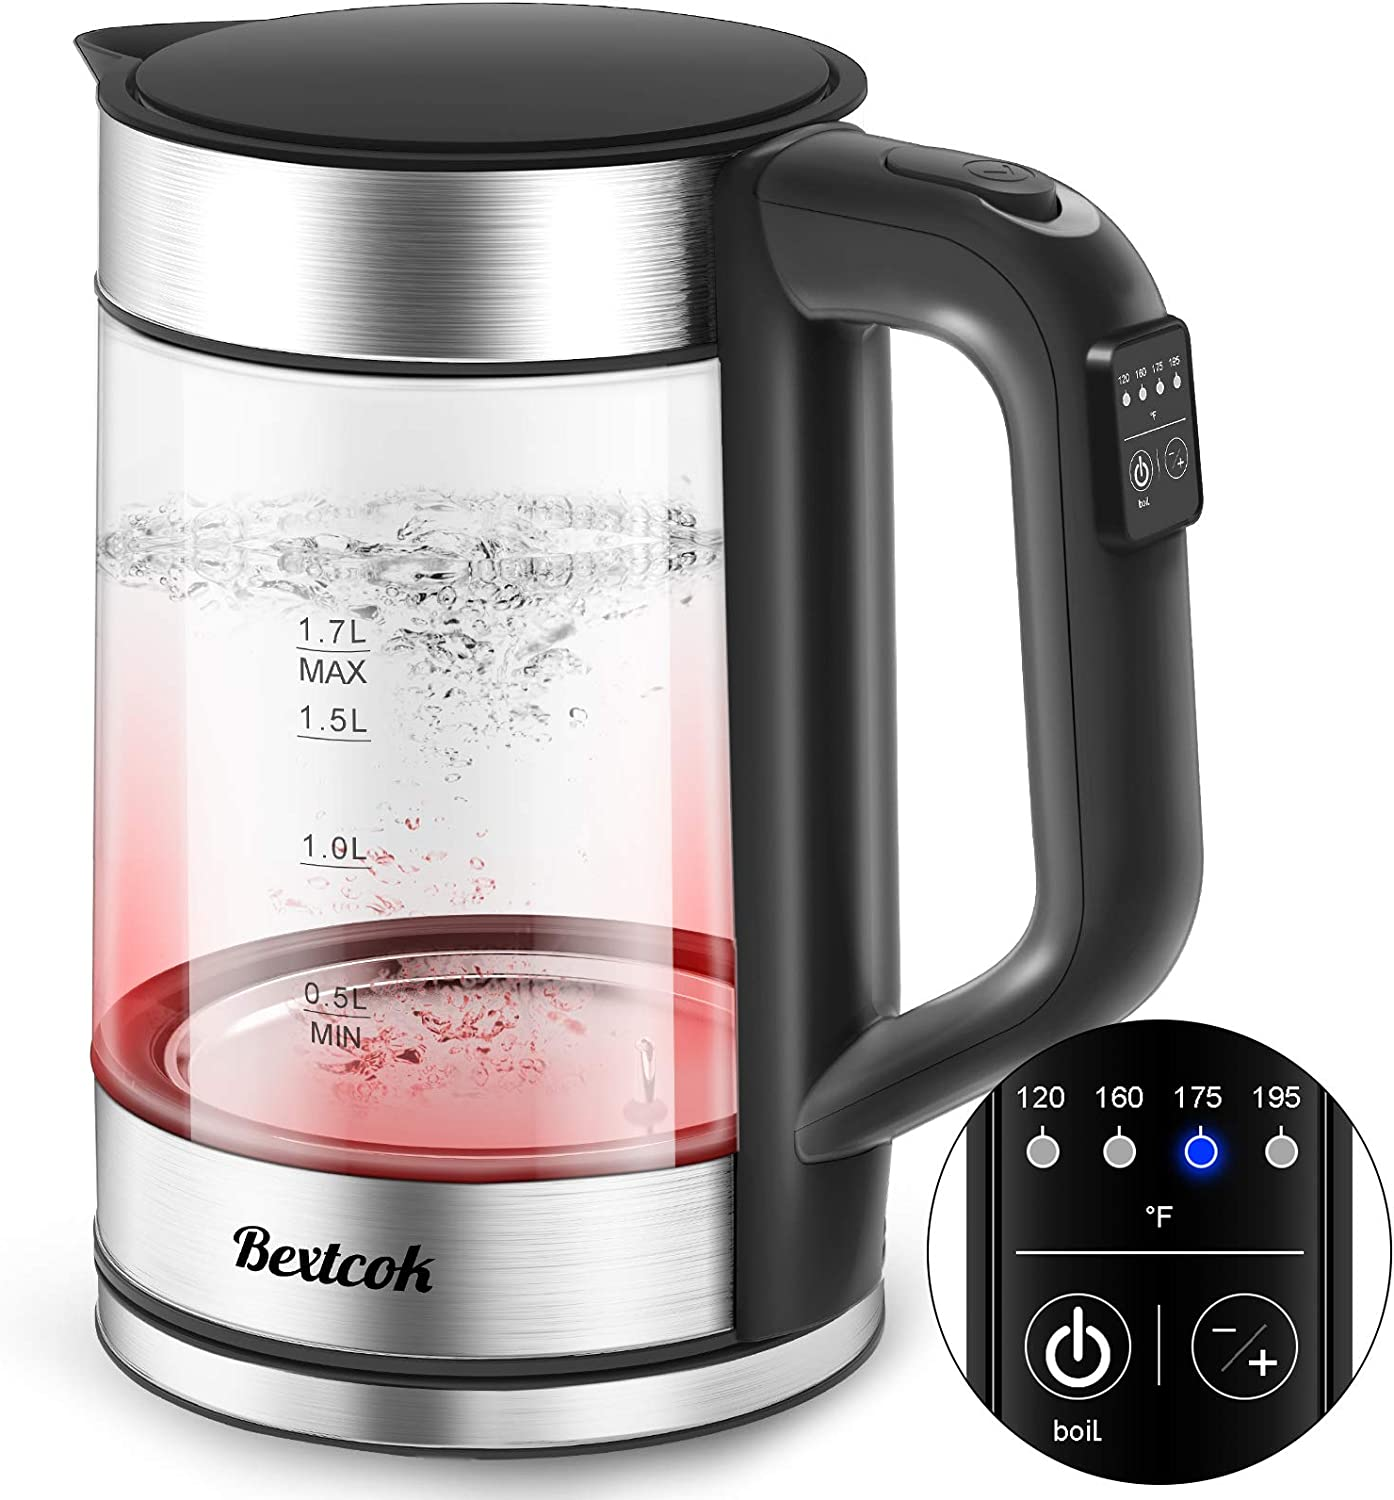 Electric Kettle, Glass Tea Kettle & Water Boiler Variable Temperature Control Tea Heater with LED Indicator Light Change Auto Shut-Off, Boil-Dry Protection, Keep Warm 1.7 L Tea Kettle